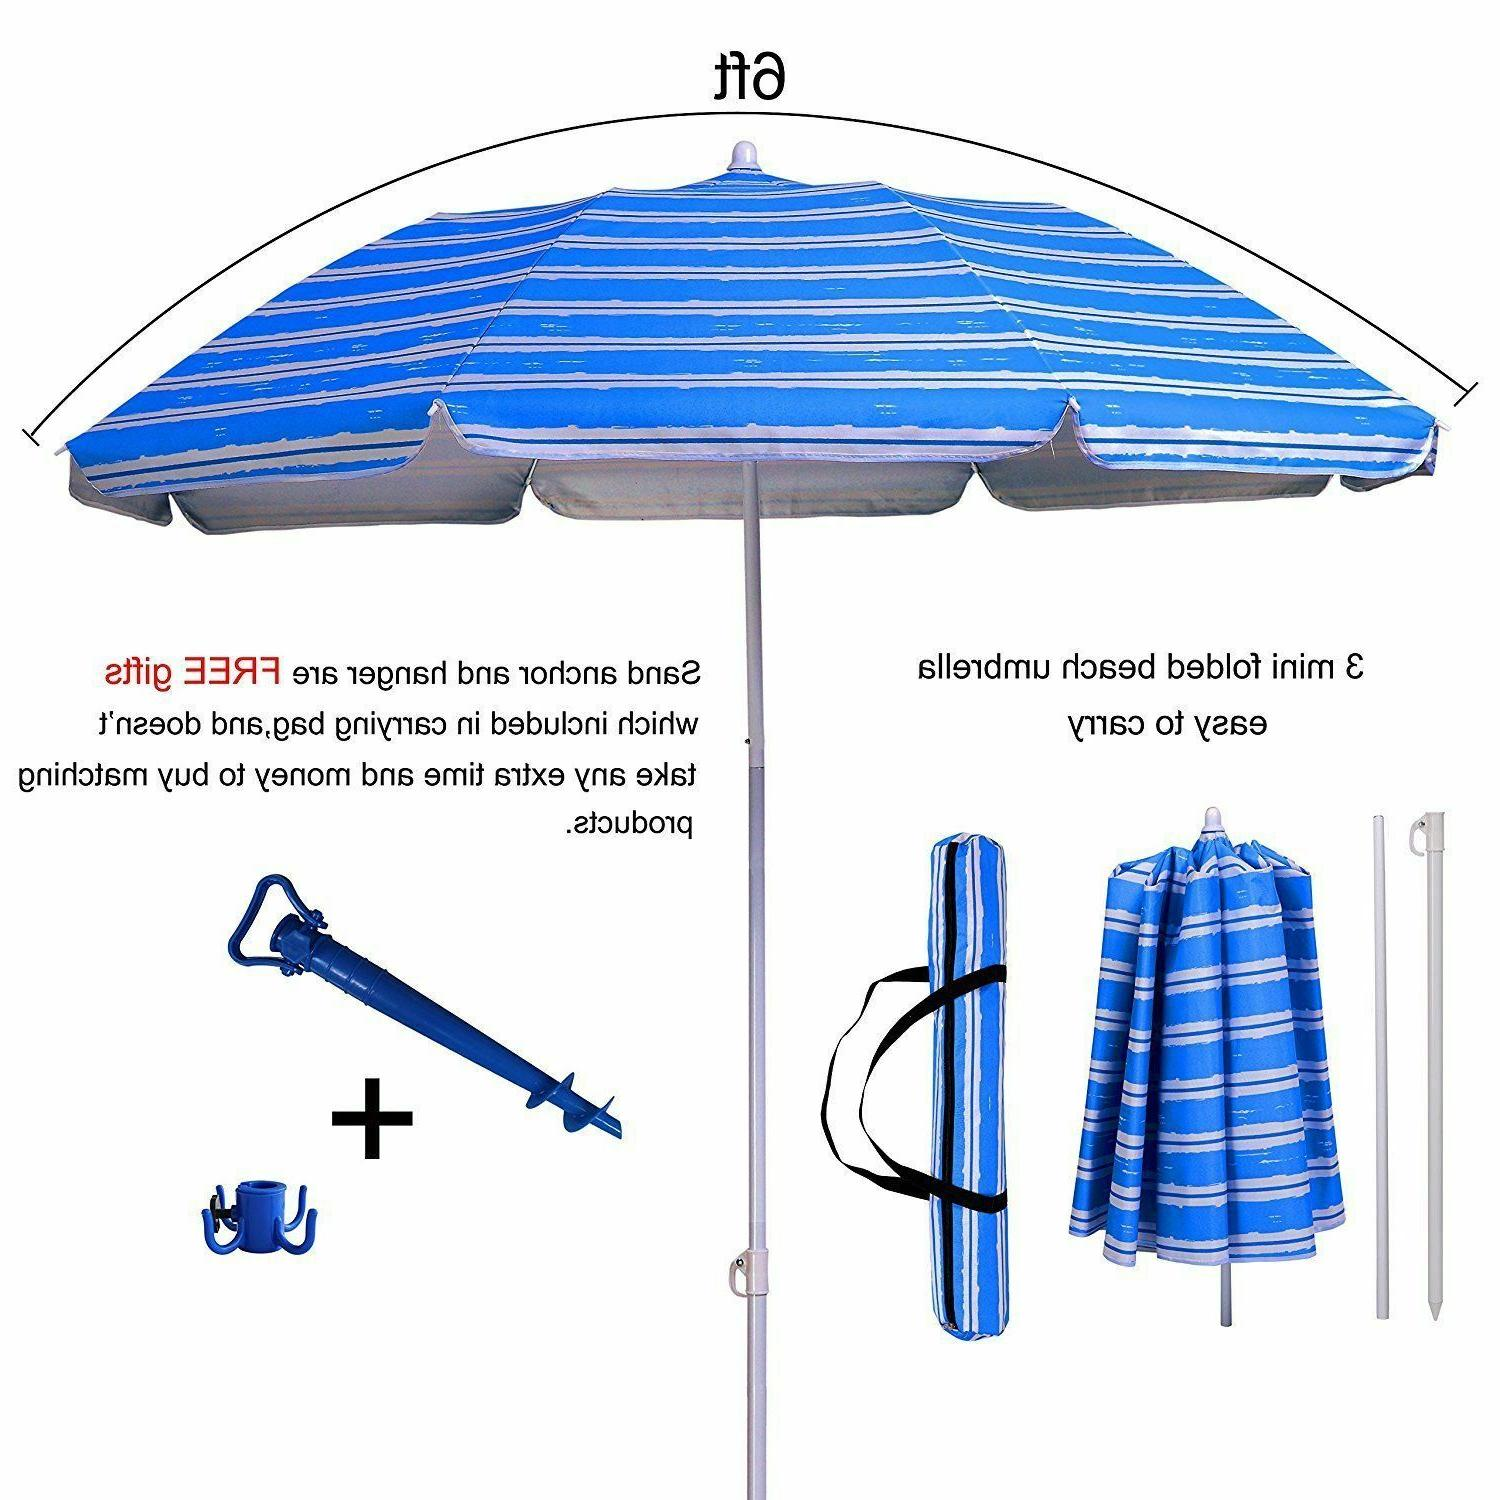 6ft portable folded beach umbrella tiltable uv